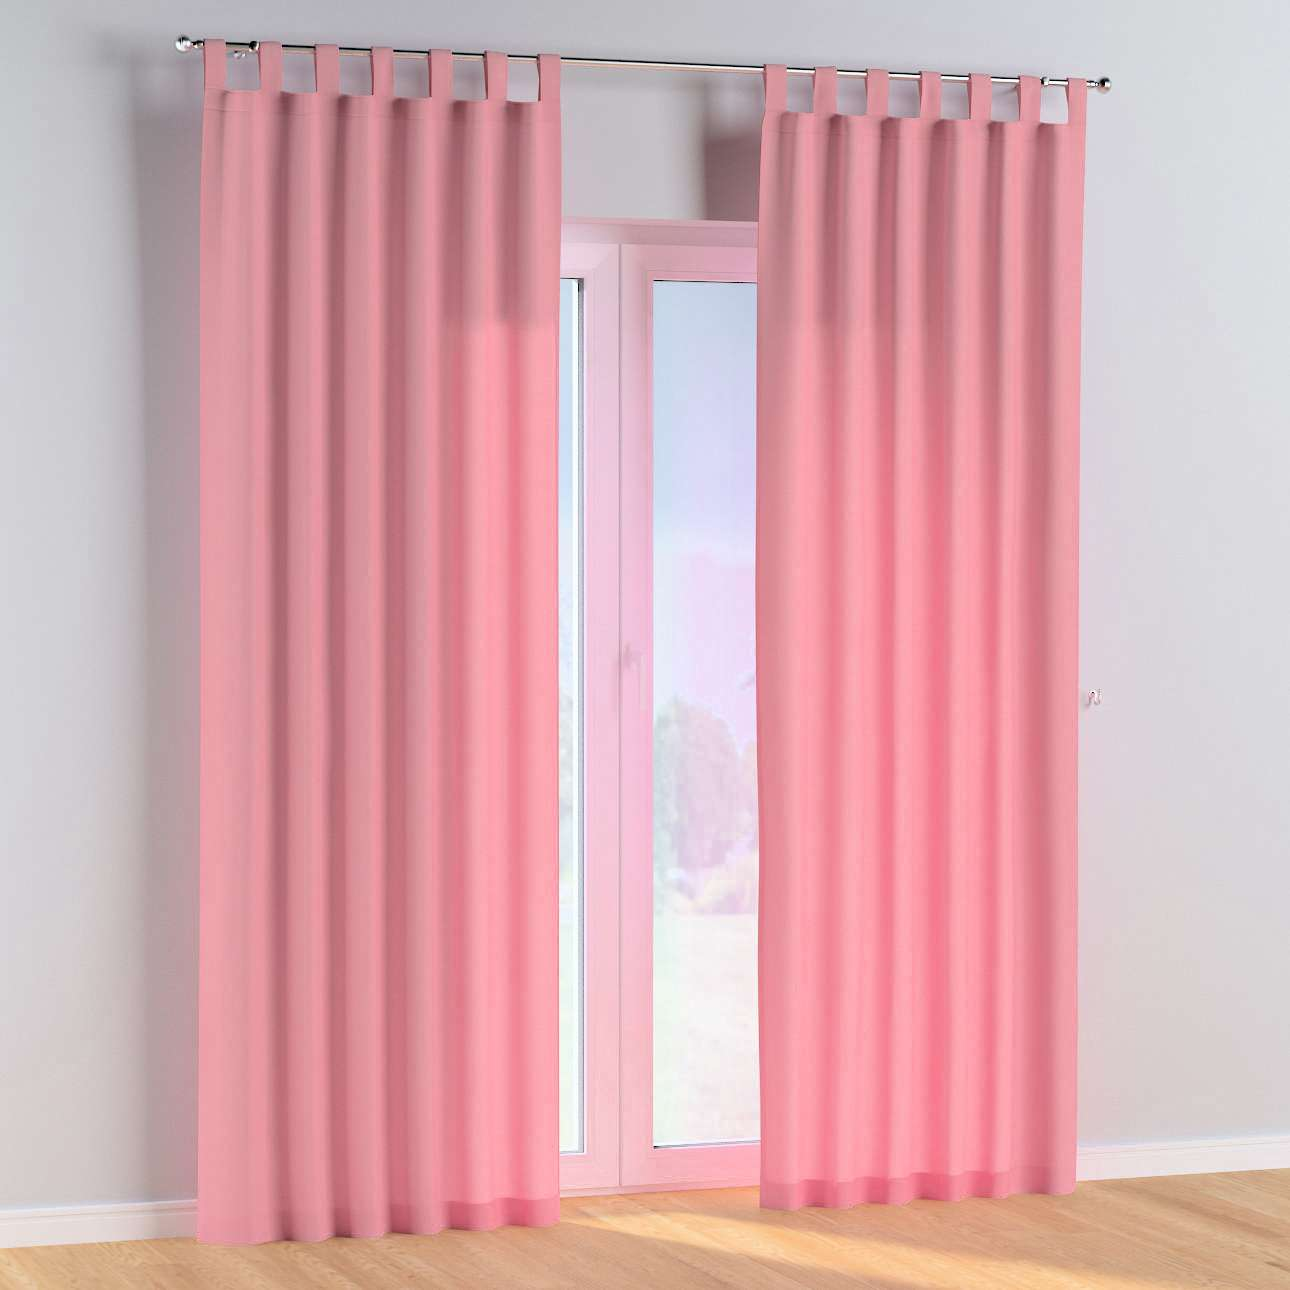 Tab top curtains in collection Happiness, fabric: 133-62